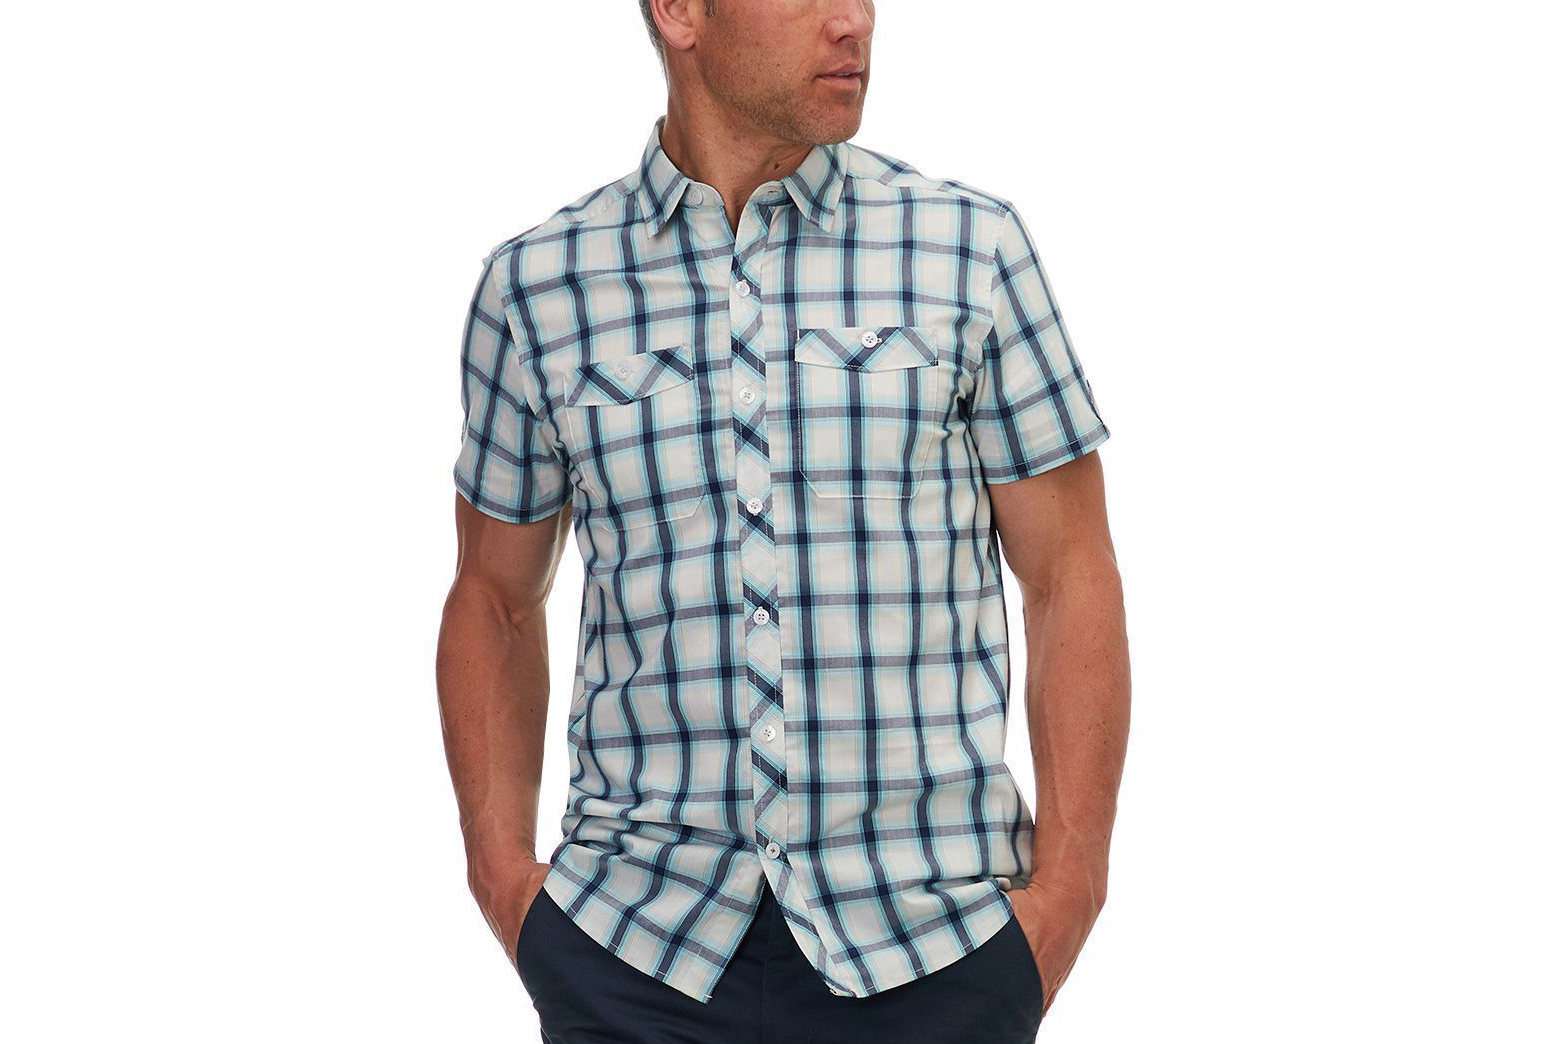 Basin and Range Kings Peak Plaid Short-Sleeve Shirt – Men's